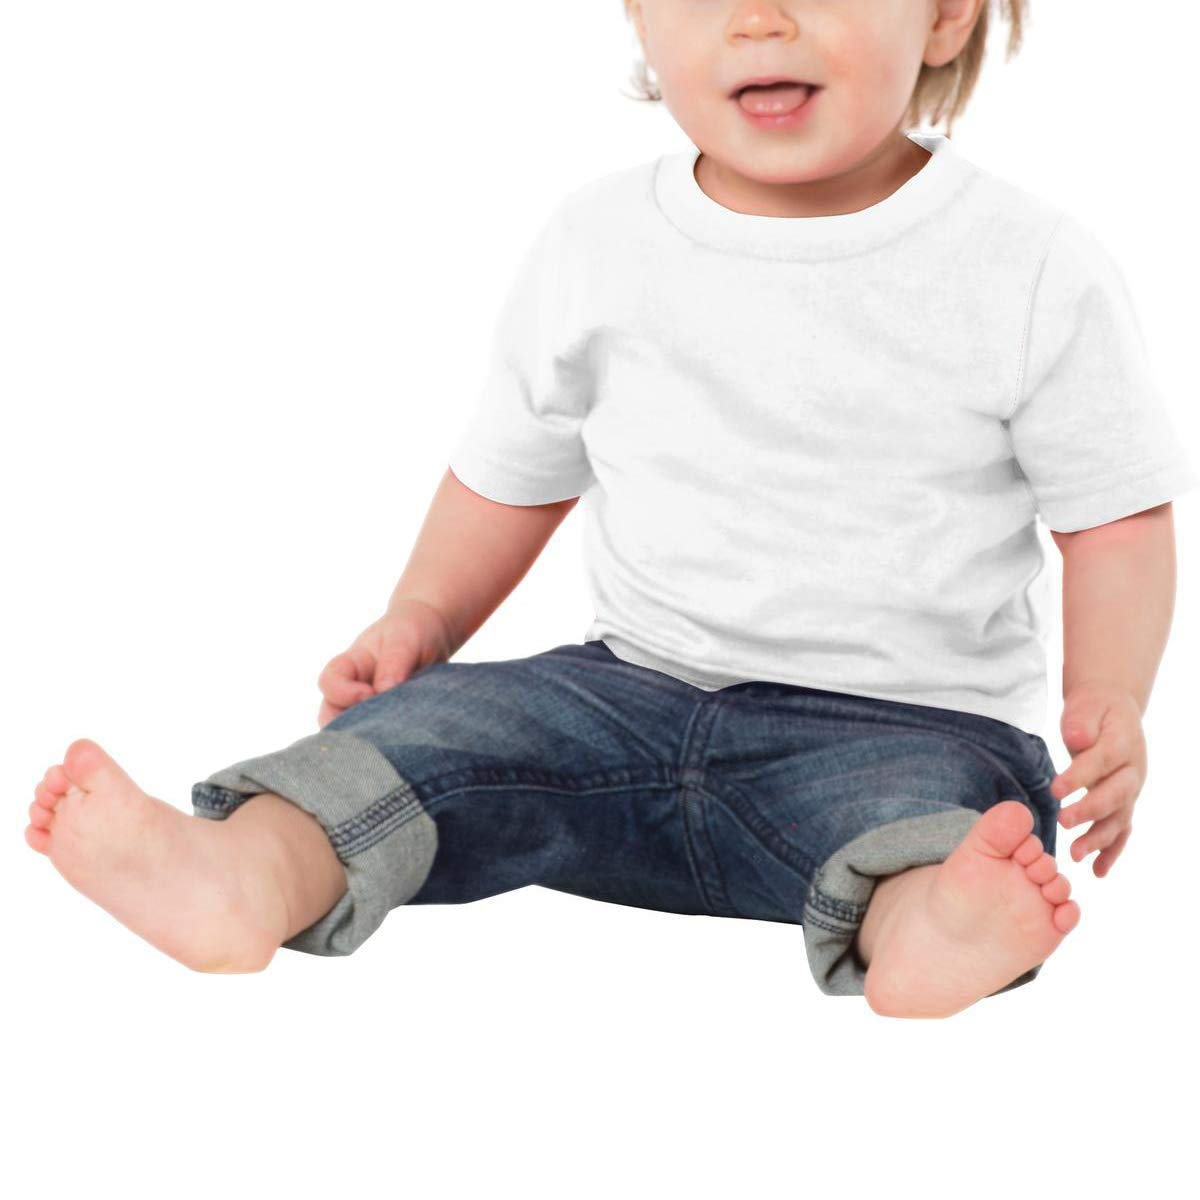 Unisex Baby Cute Tee Sunset Line T-Shirt 6M-24M